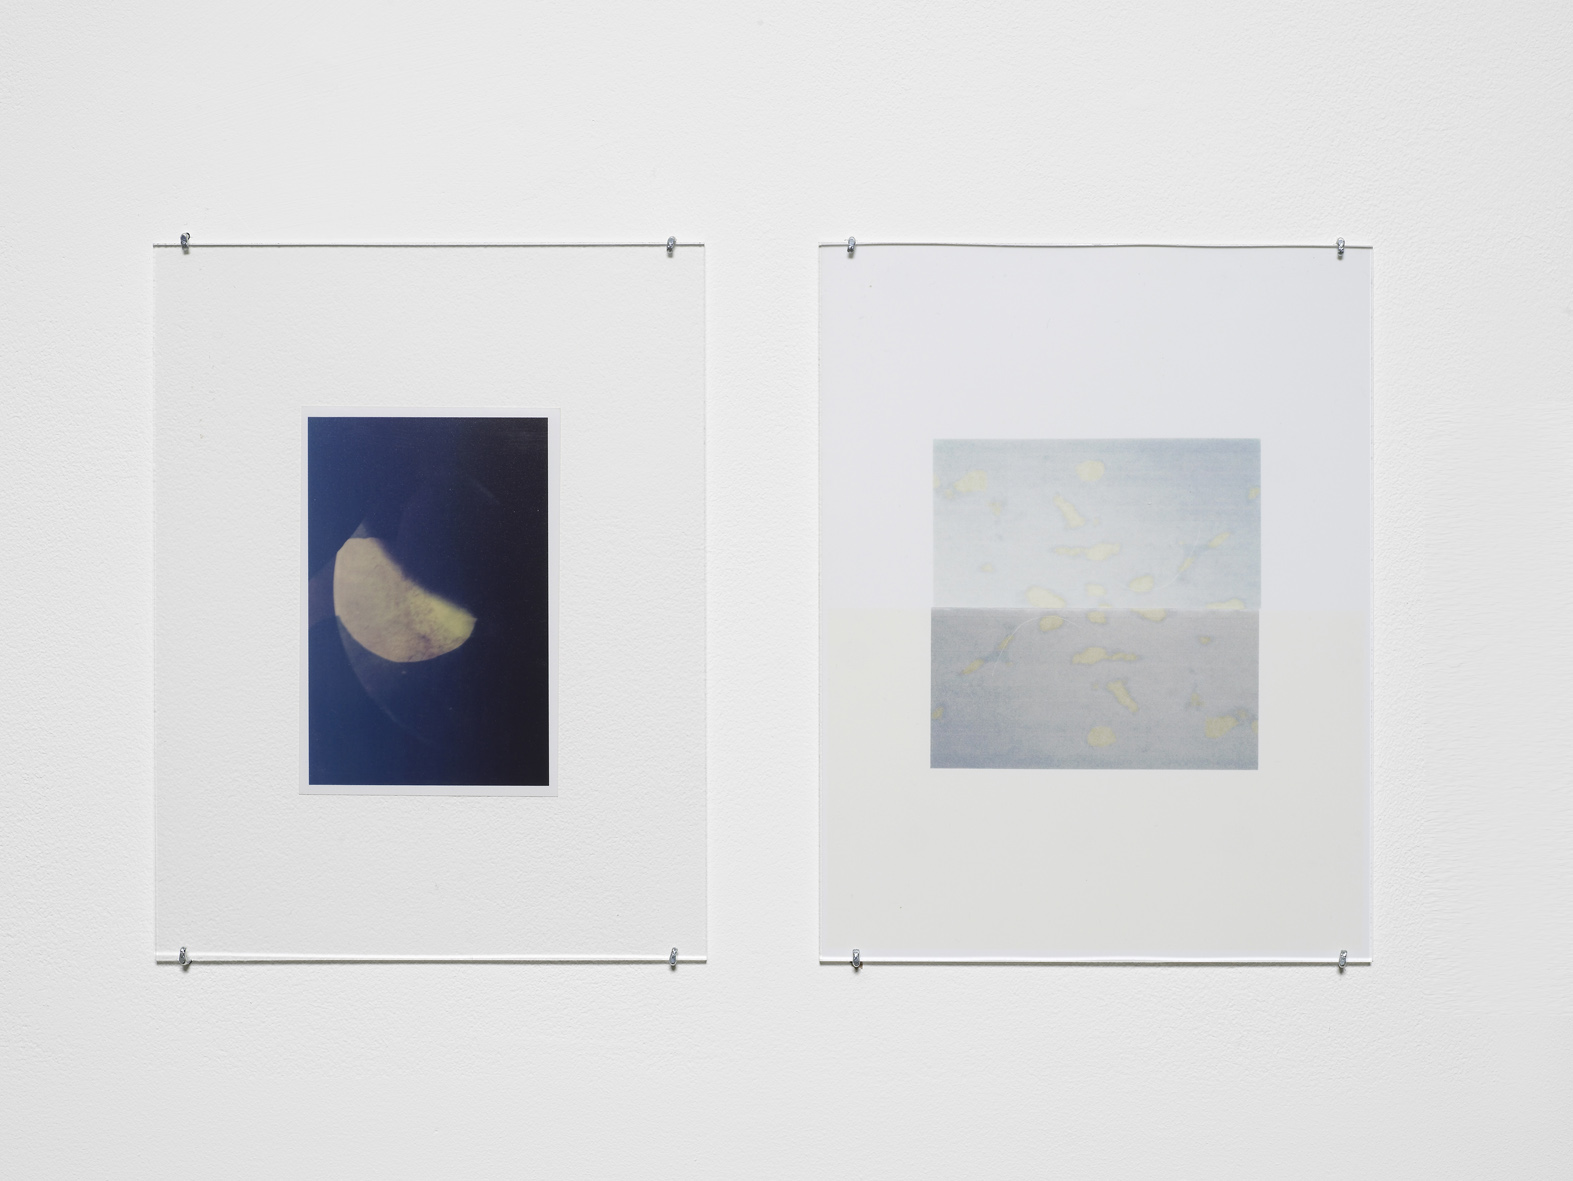 Untitled 2015 Unique C-print, inkjet print, non-reflective perspex, L shaped pins  2 parts, each: 27.9 x 21.5 cm / 11 x 8.5 in